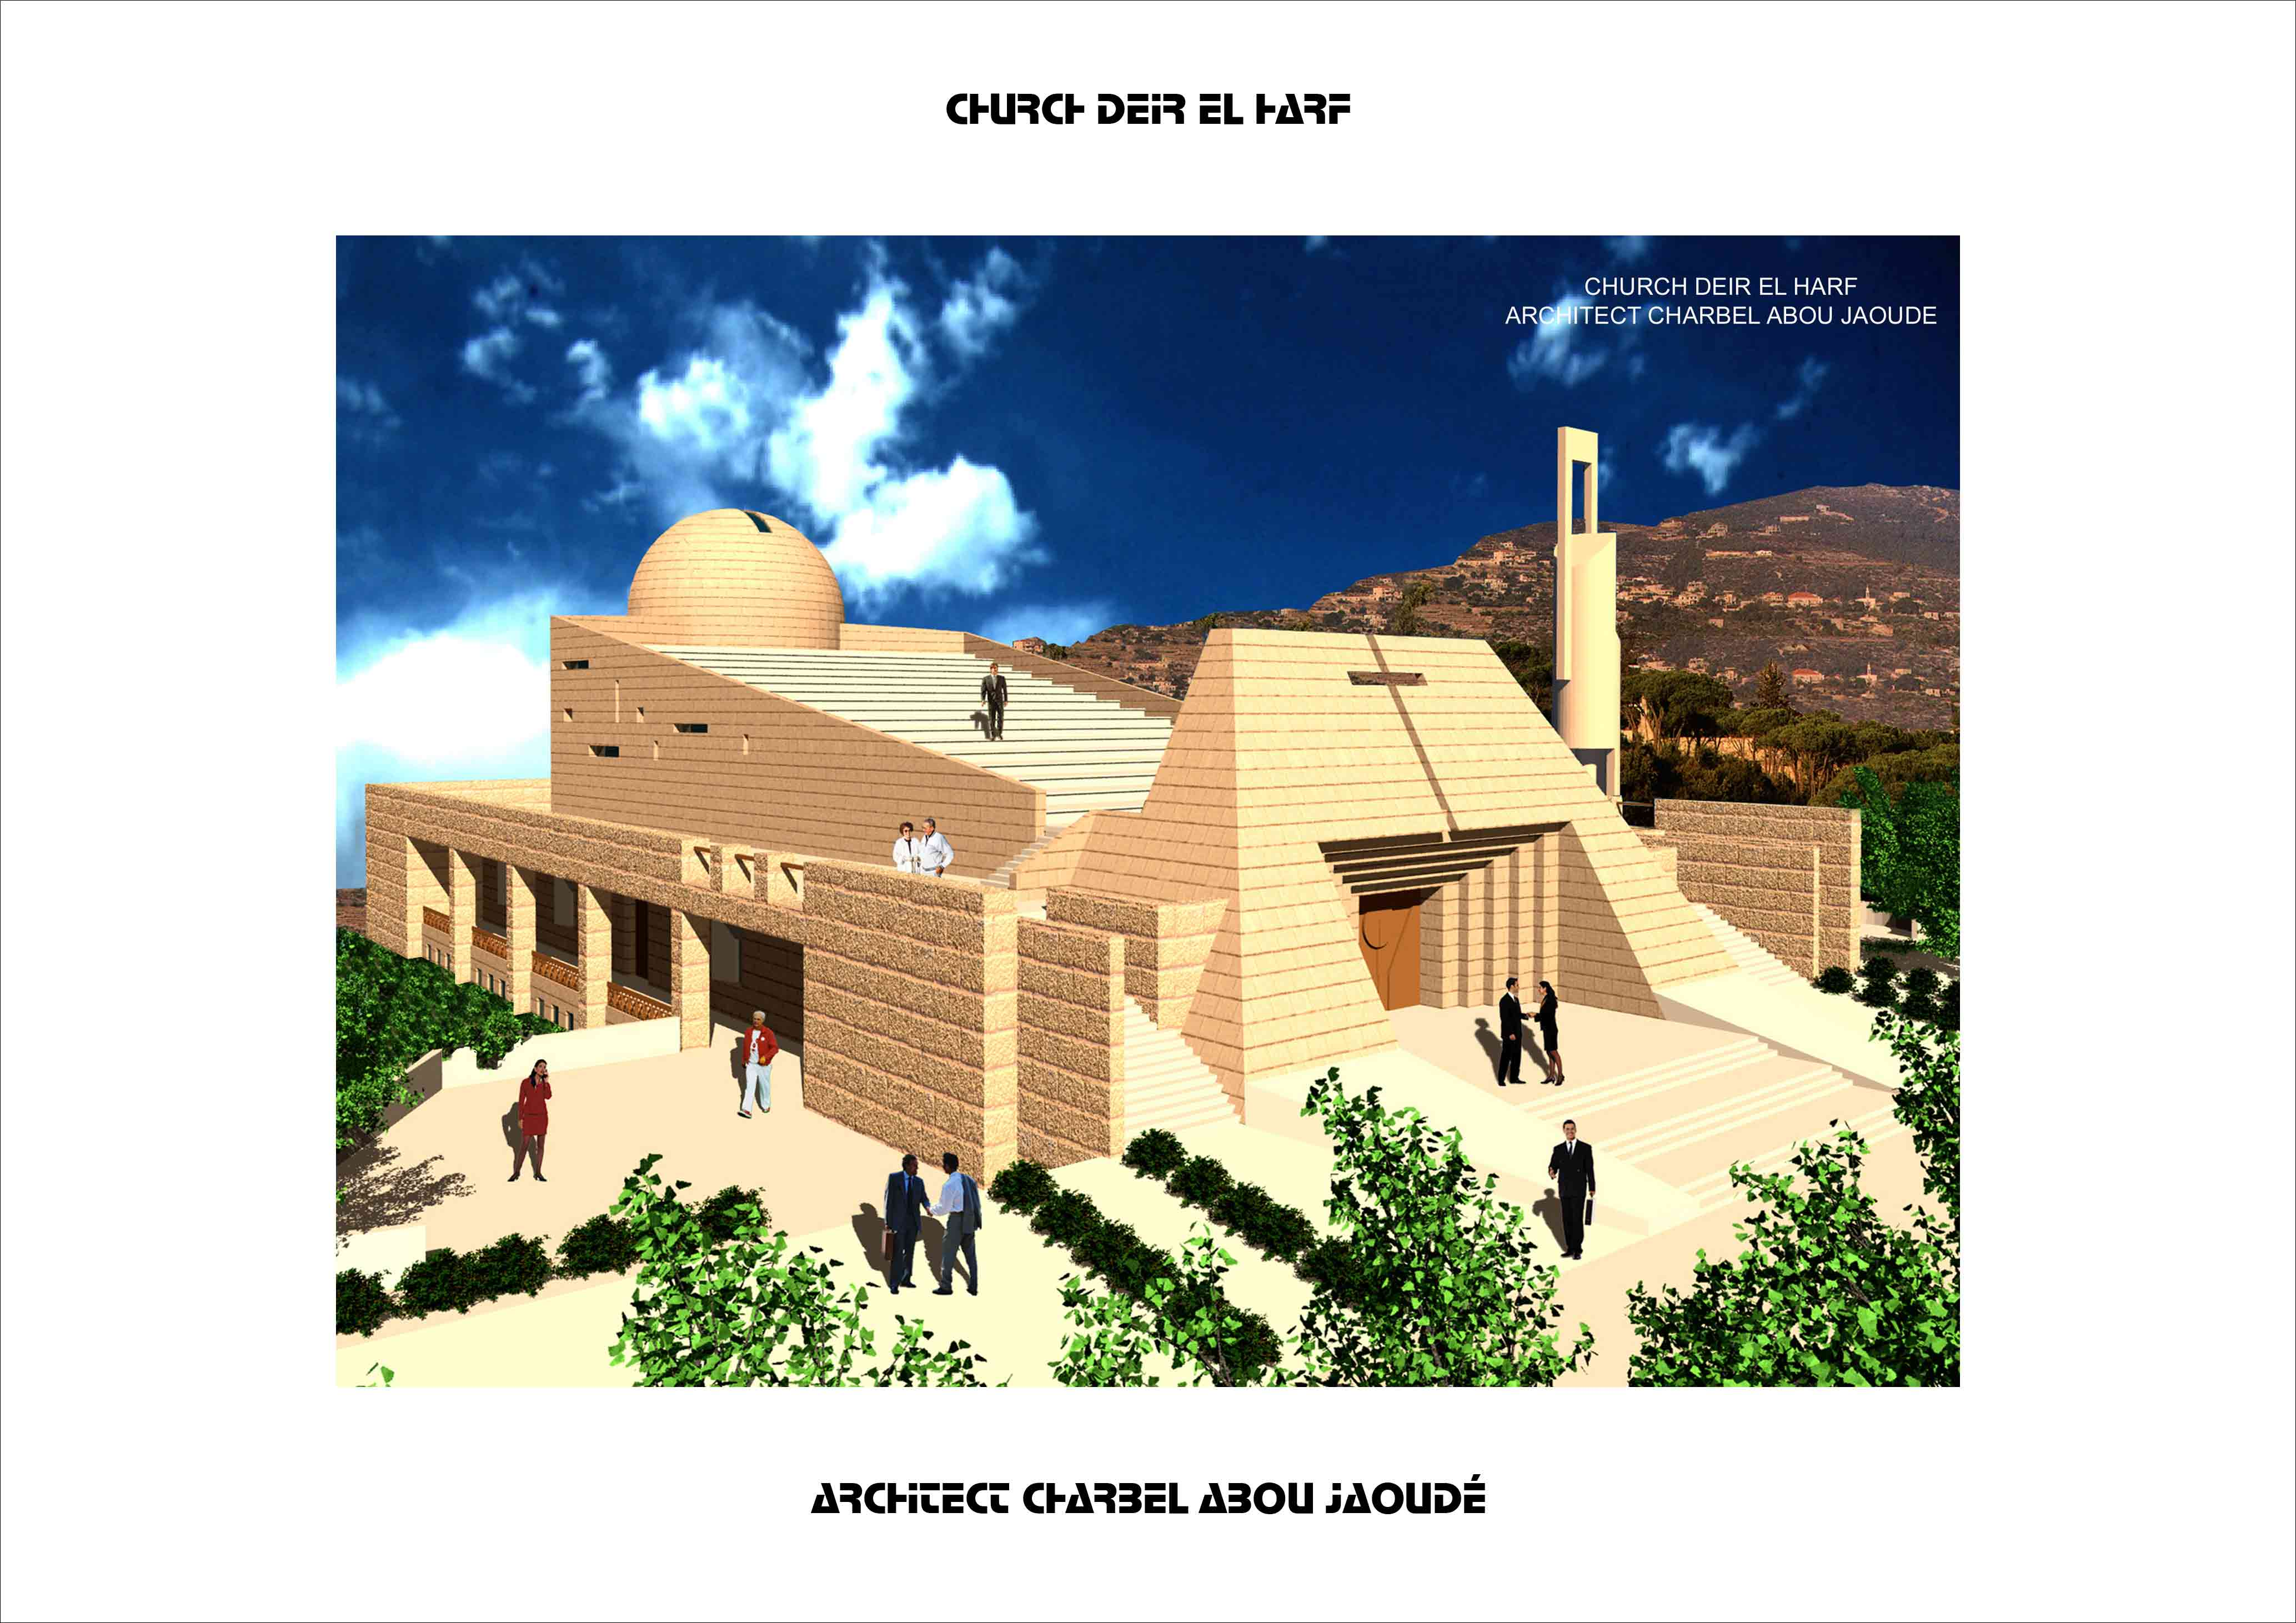 Charbel Abou Jaoude